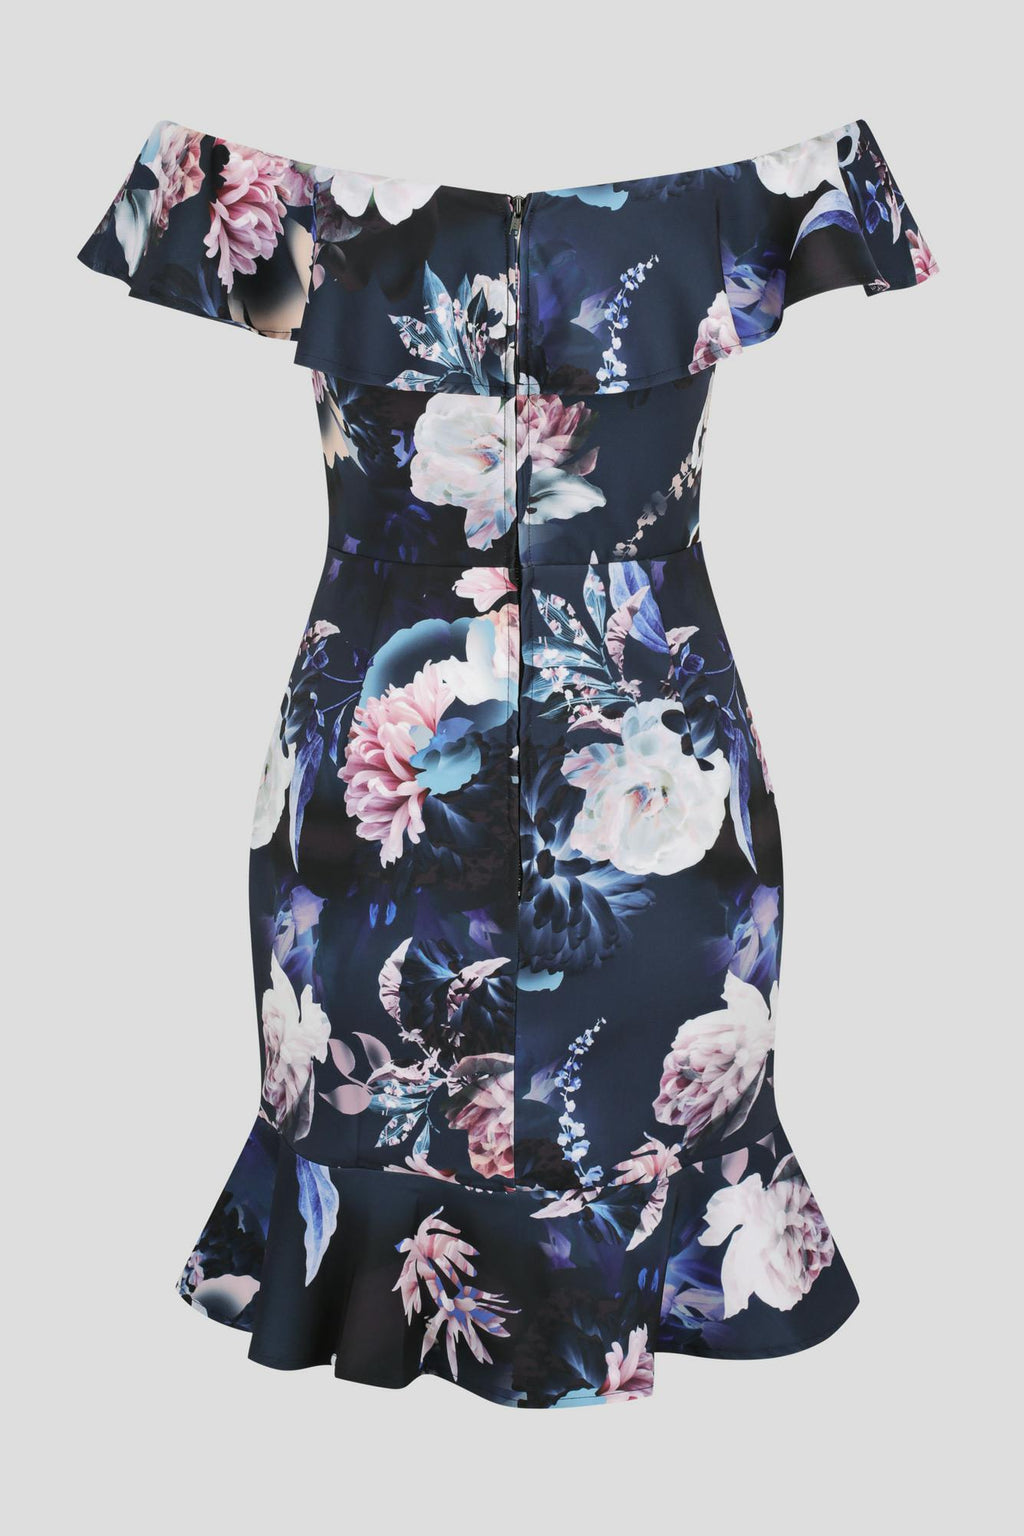 Magic Ruffle Dress by Fresh Soul - Spellbound Navy Print